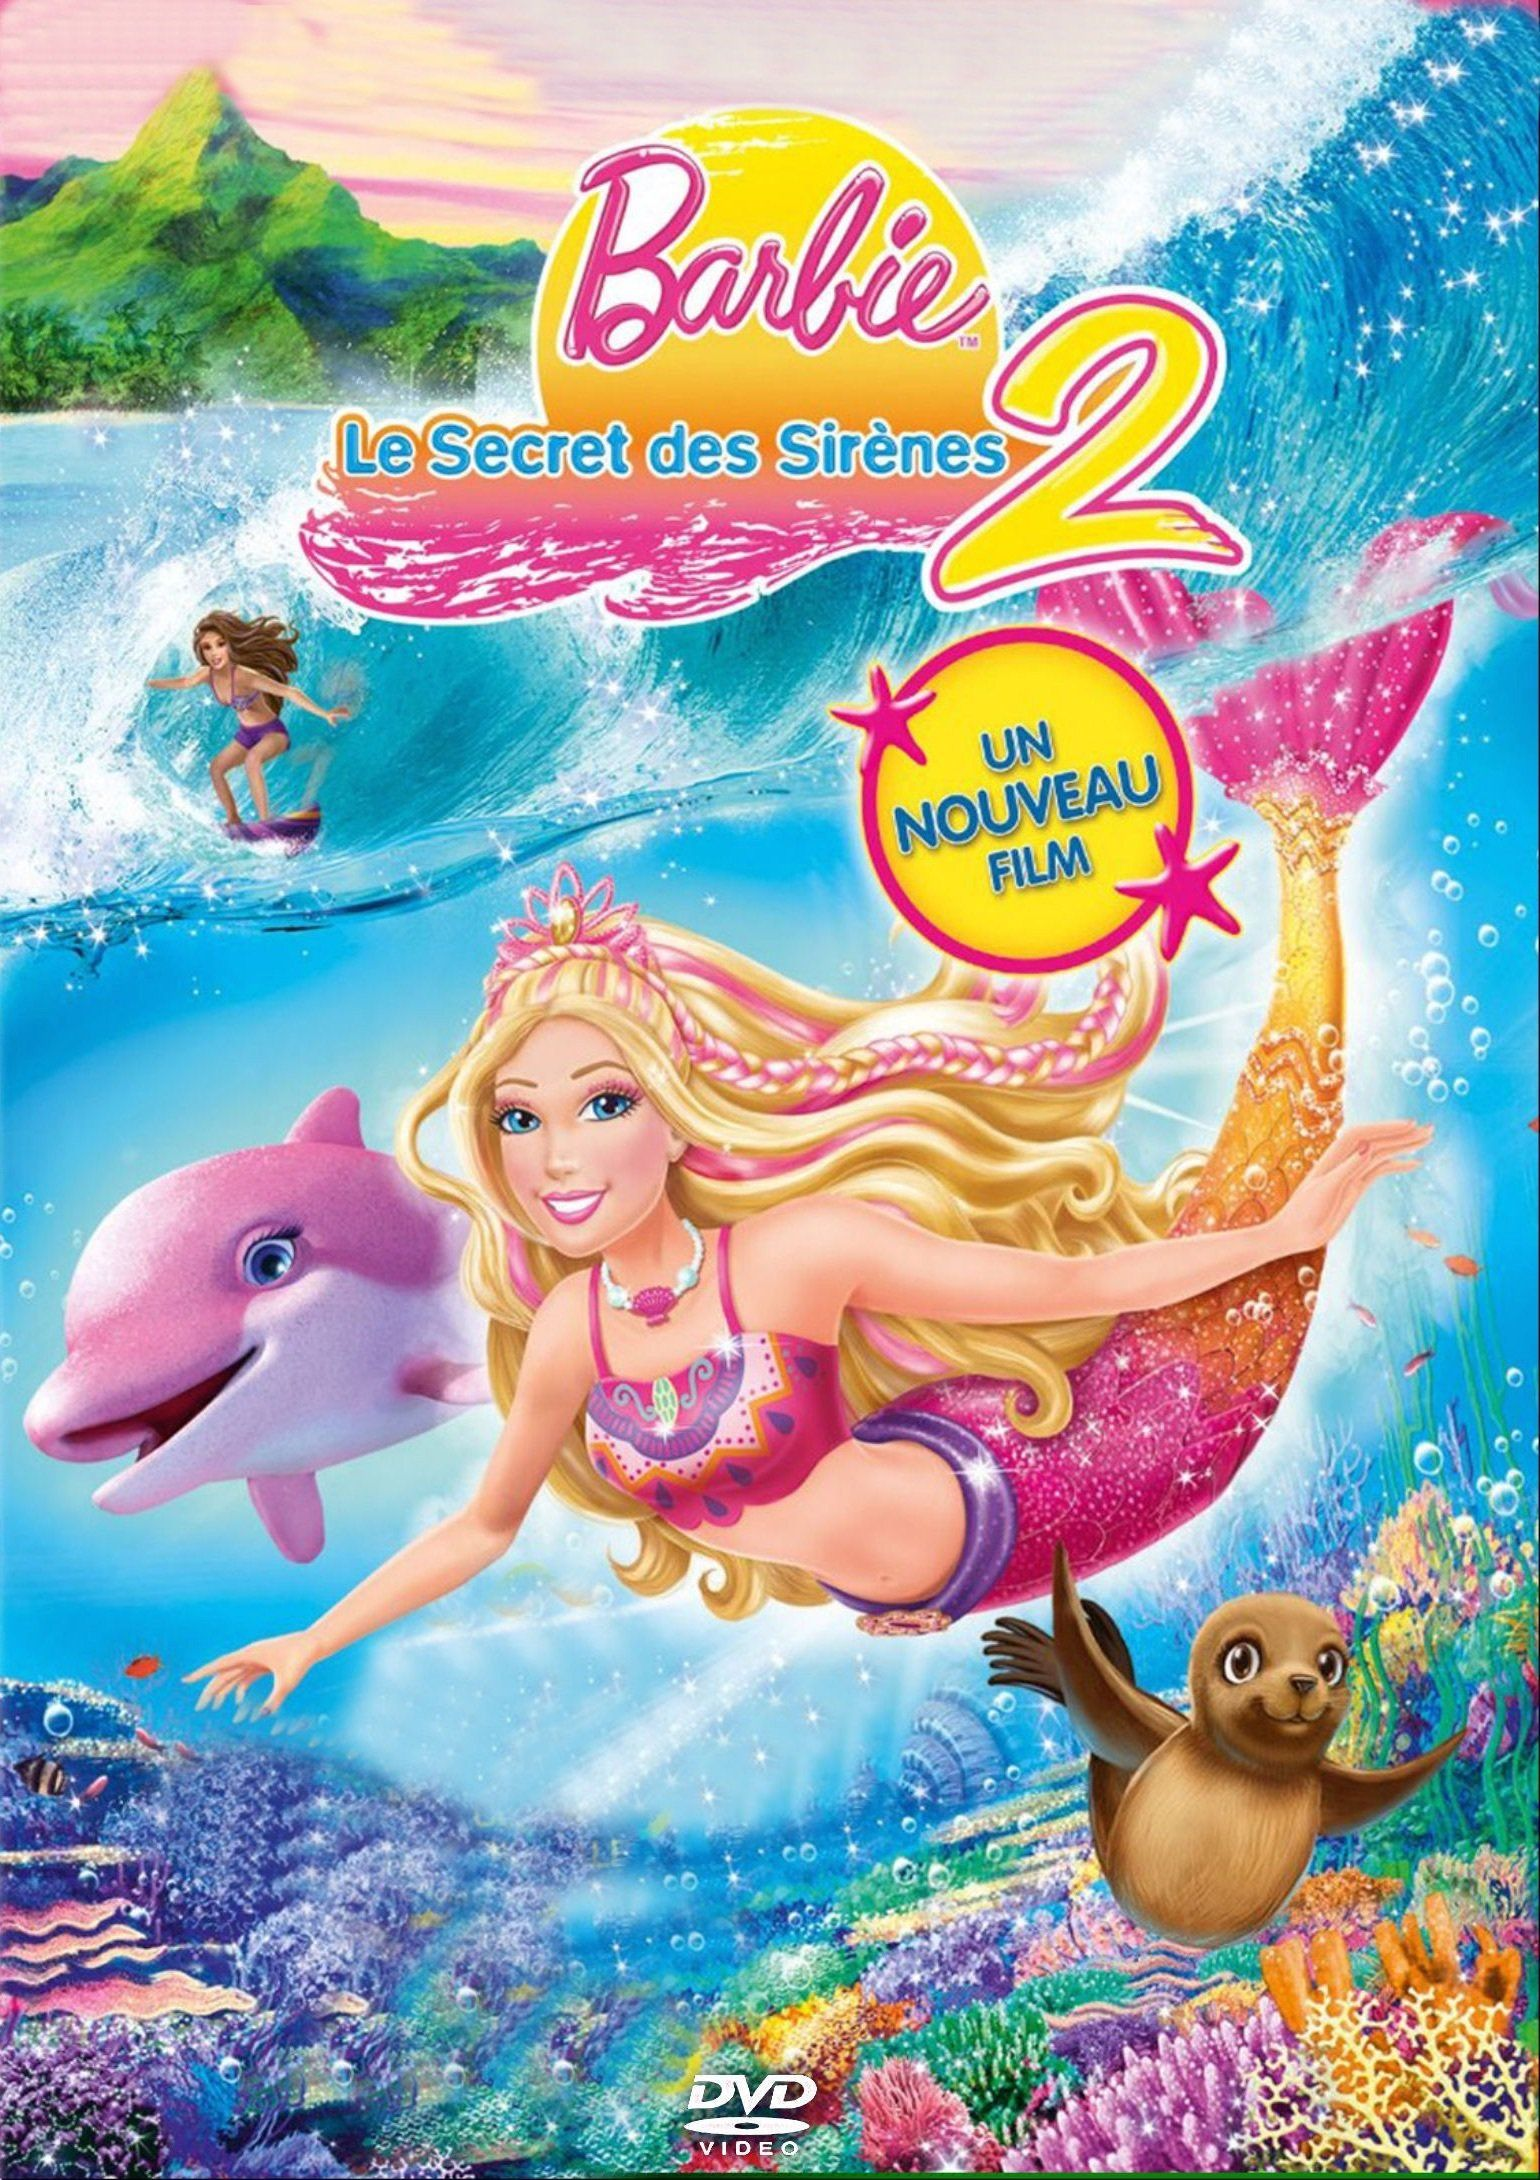 Barbie et le secret des sir nes 2 long m trage d 39 animation 2012 - Barbi sirene 2 film ...